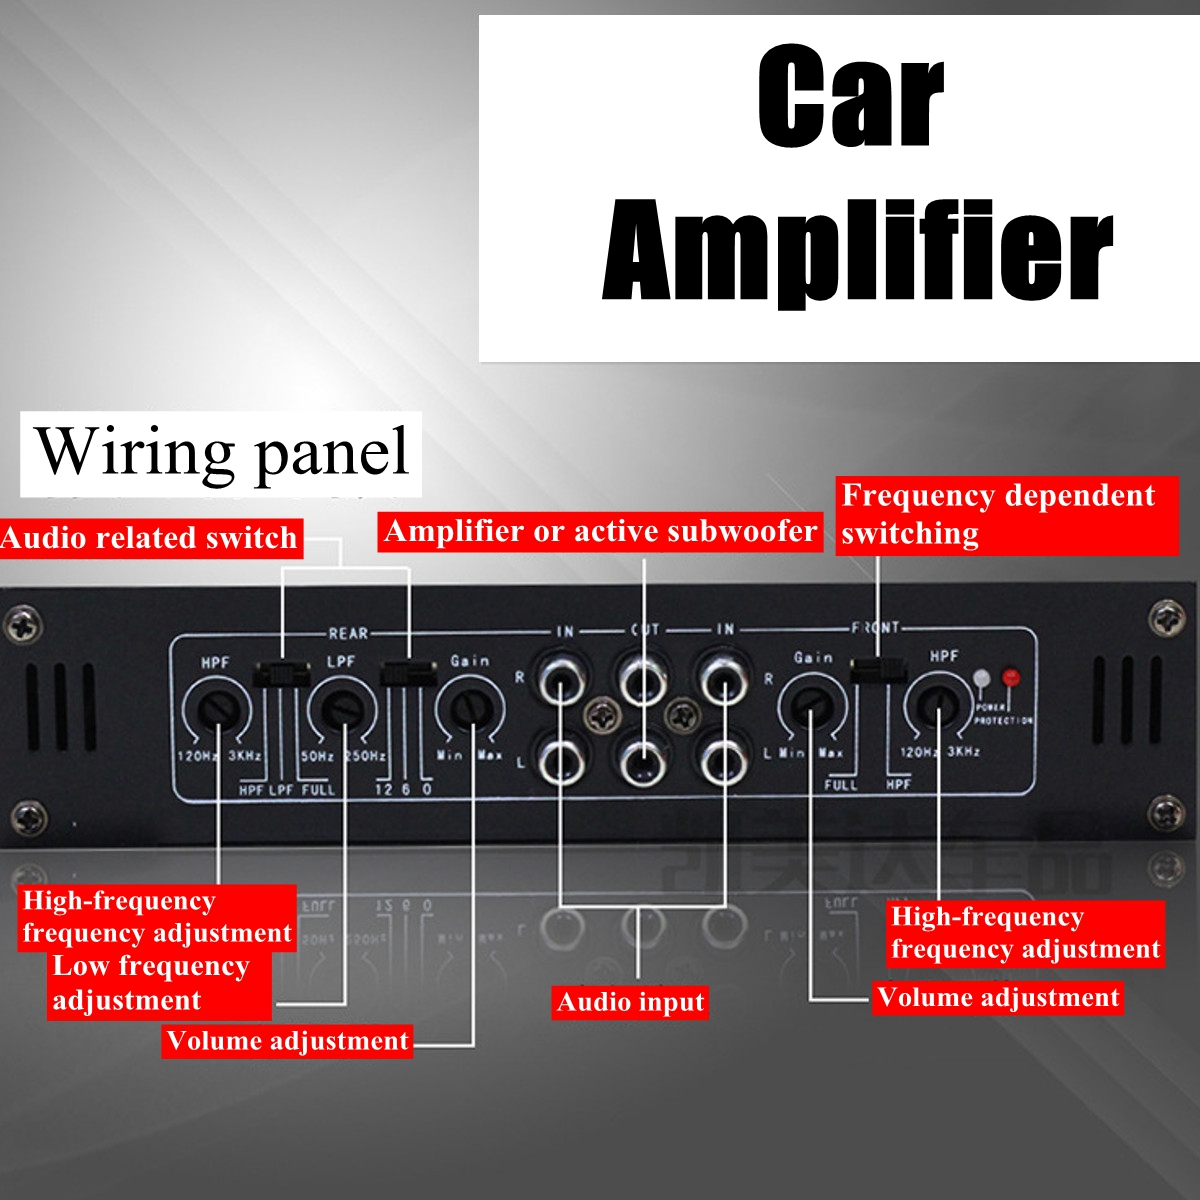 Power Hifi Amplifier 4ch 3800w Audio Stereo 12v Amp Speaker 2 Ohm 3khz Low Pass Filter And Circuit Diagram Super Variable High Crossover Efficiency Mosfet Supply Thermai Short Overloading Protection Tri Mode Output Configurations